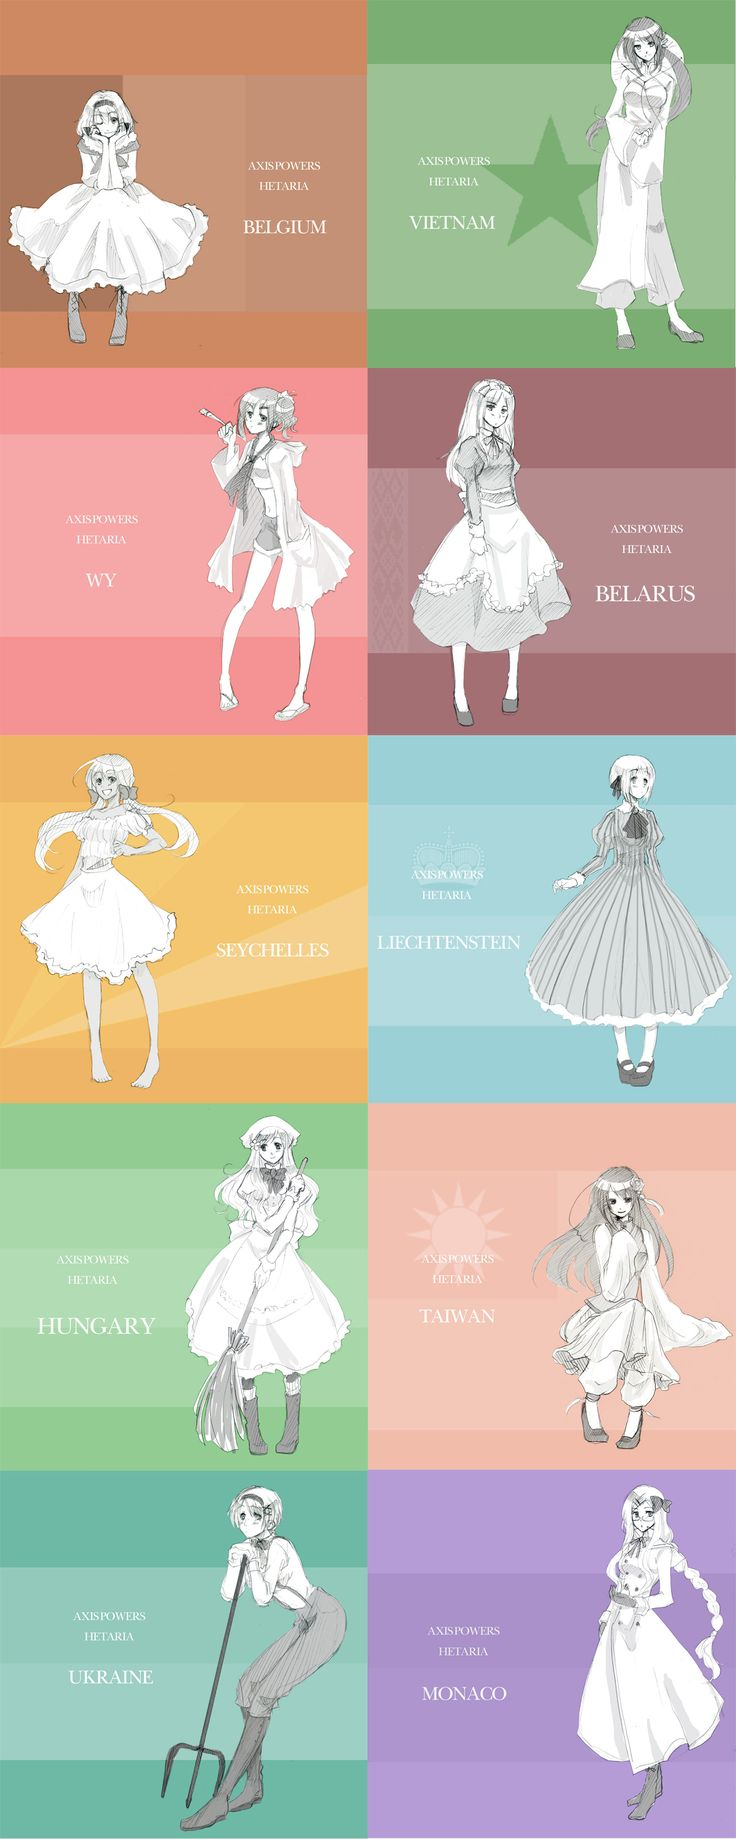 Hetalia: Girl Power